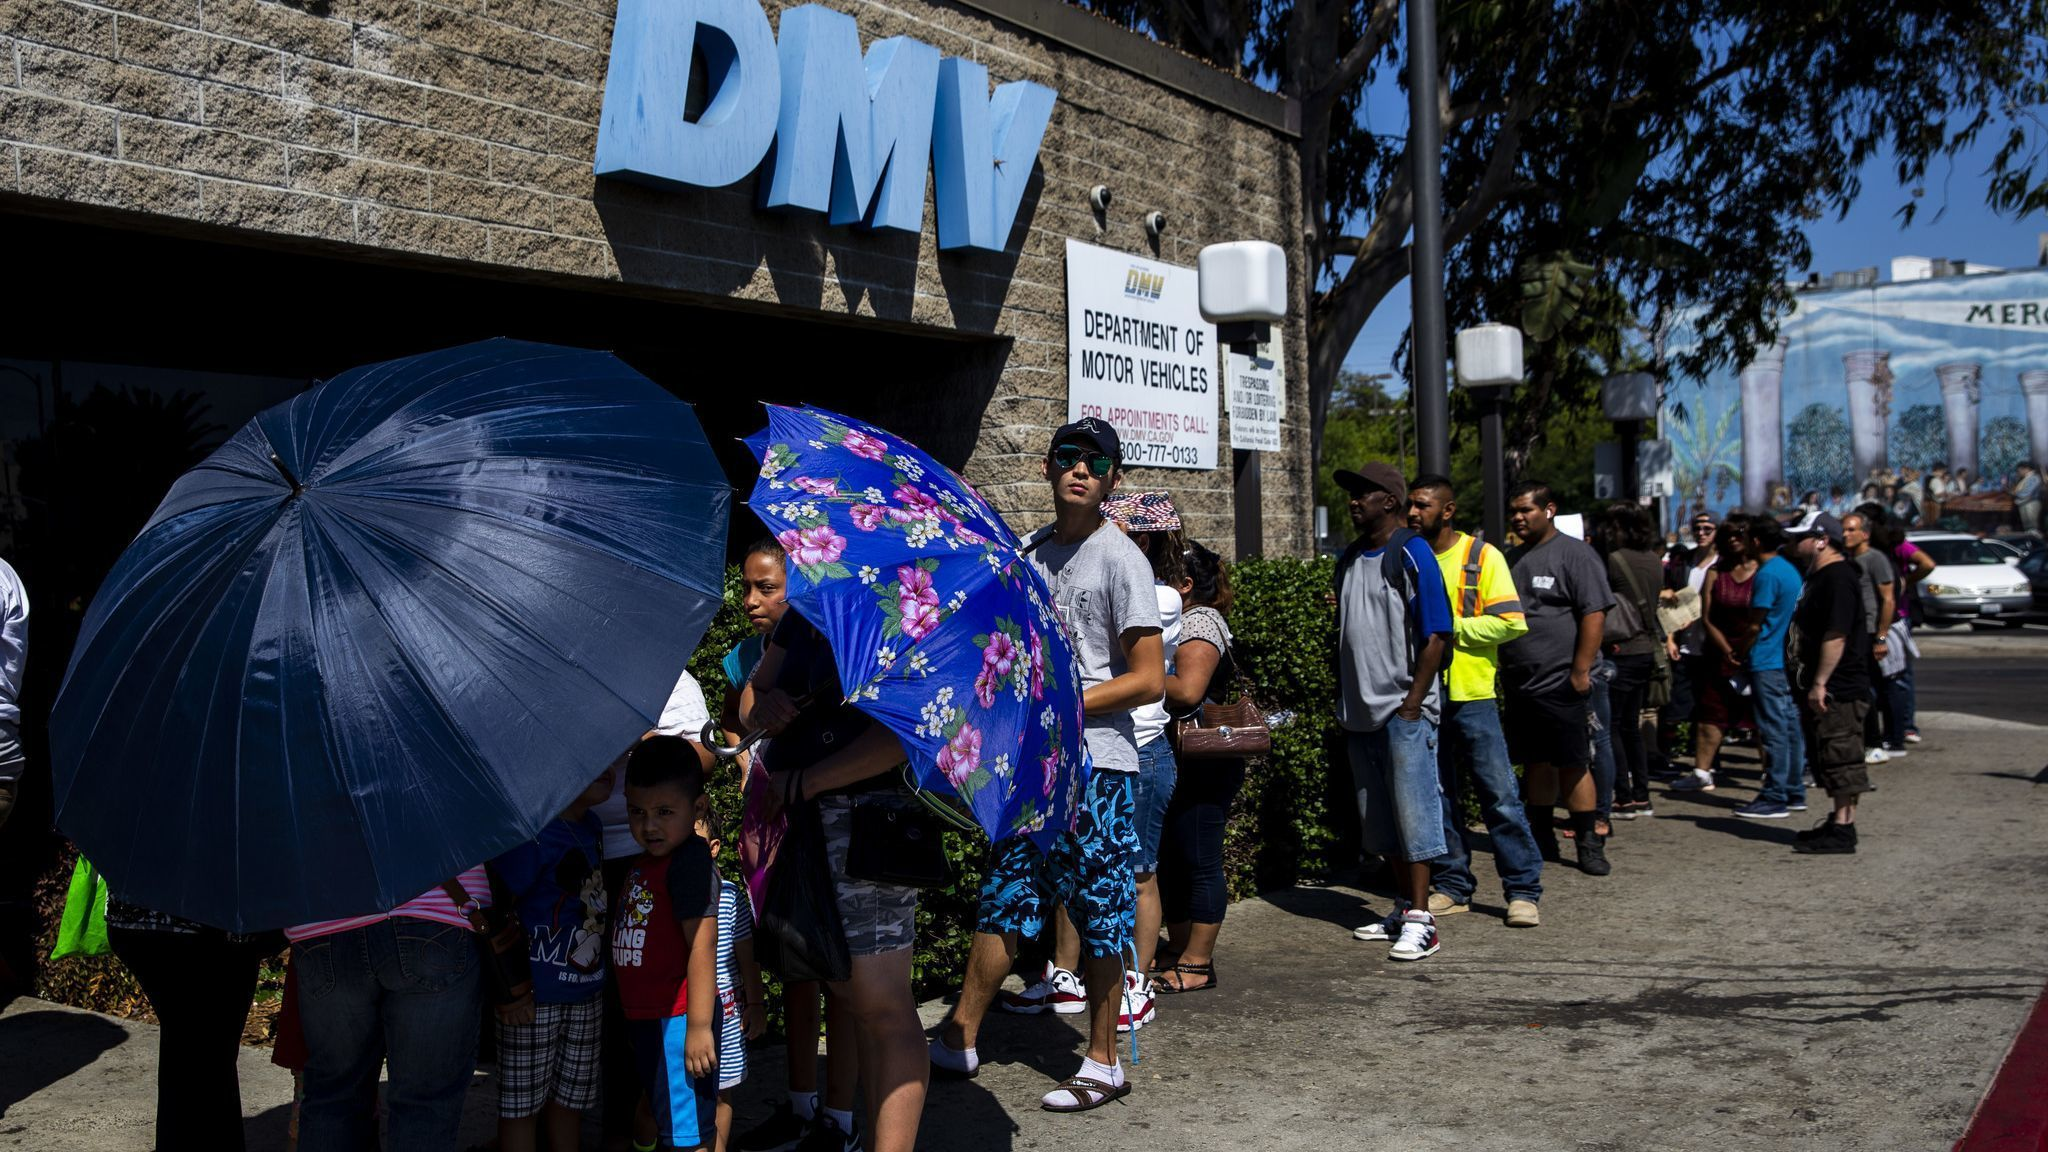 Gov. Jerry Brown orders audit of DMV over hours-long wait times | San Diego Union Tribune